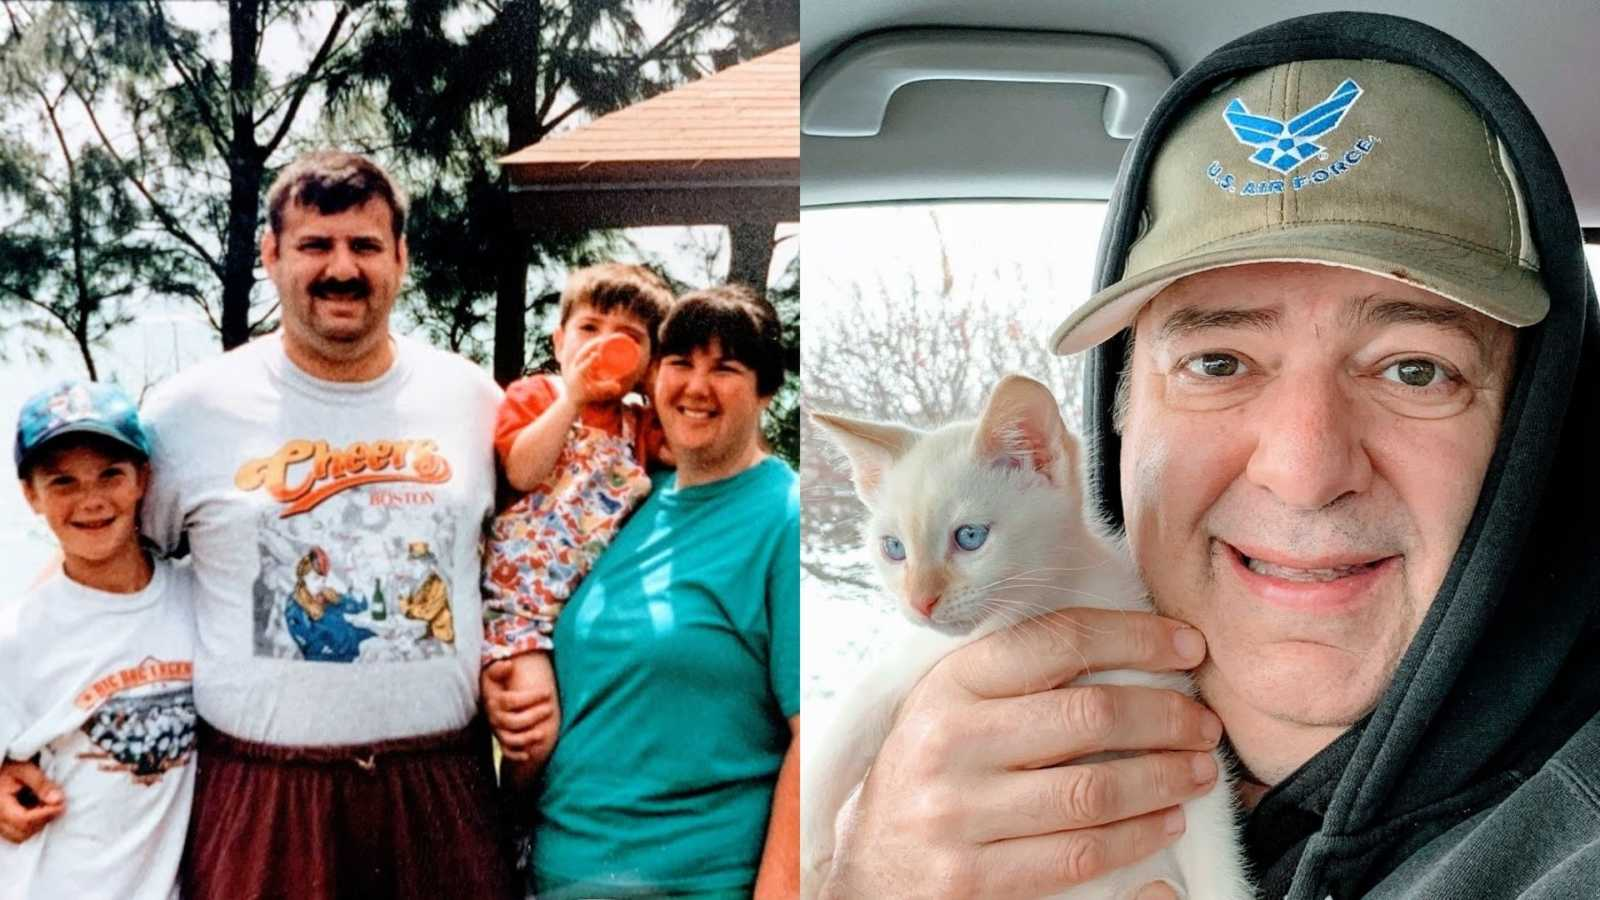 A family of four stand together outside and an older man holds up a white kitten